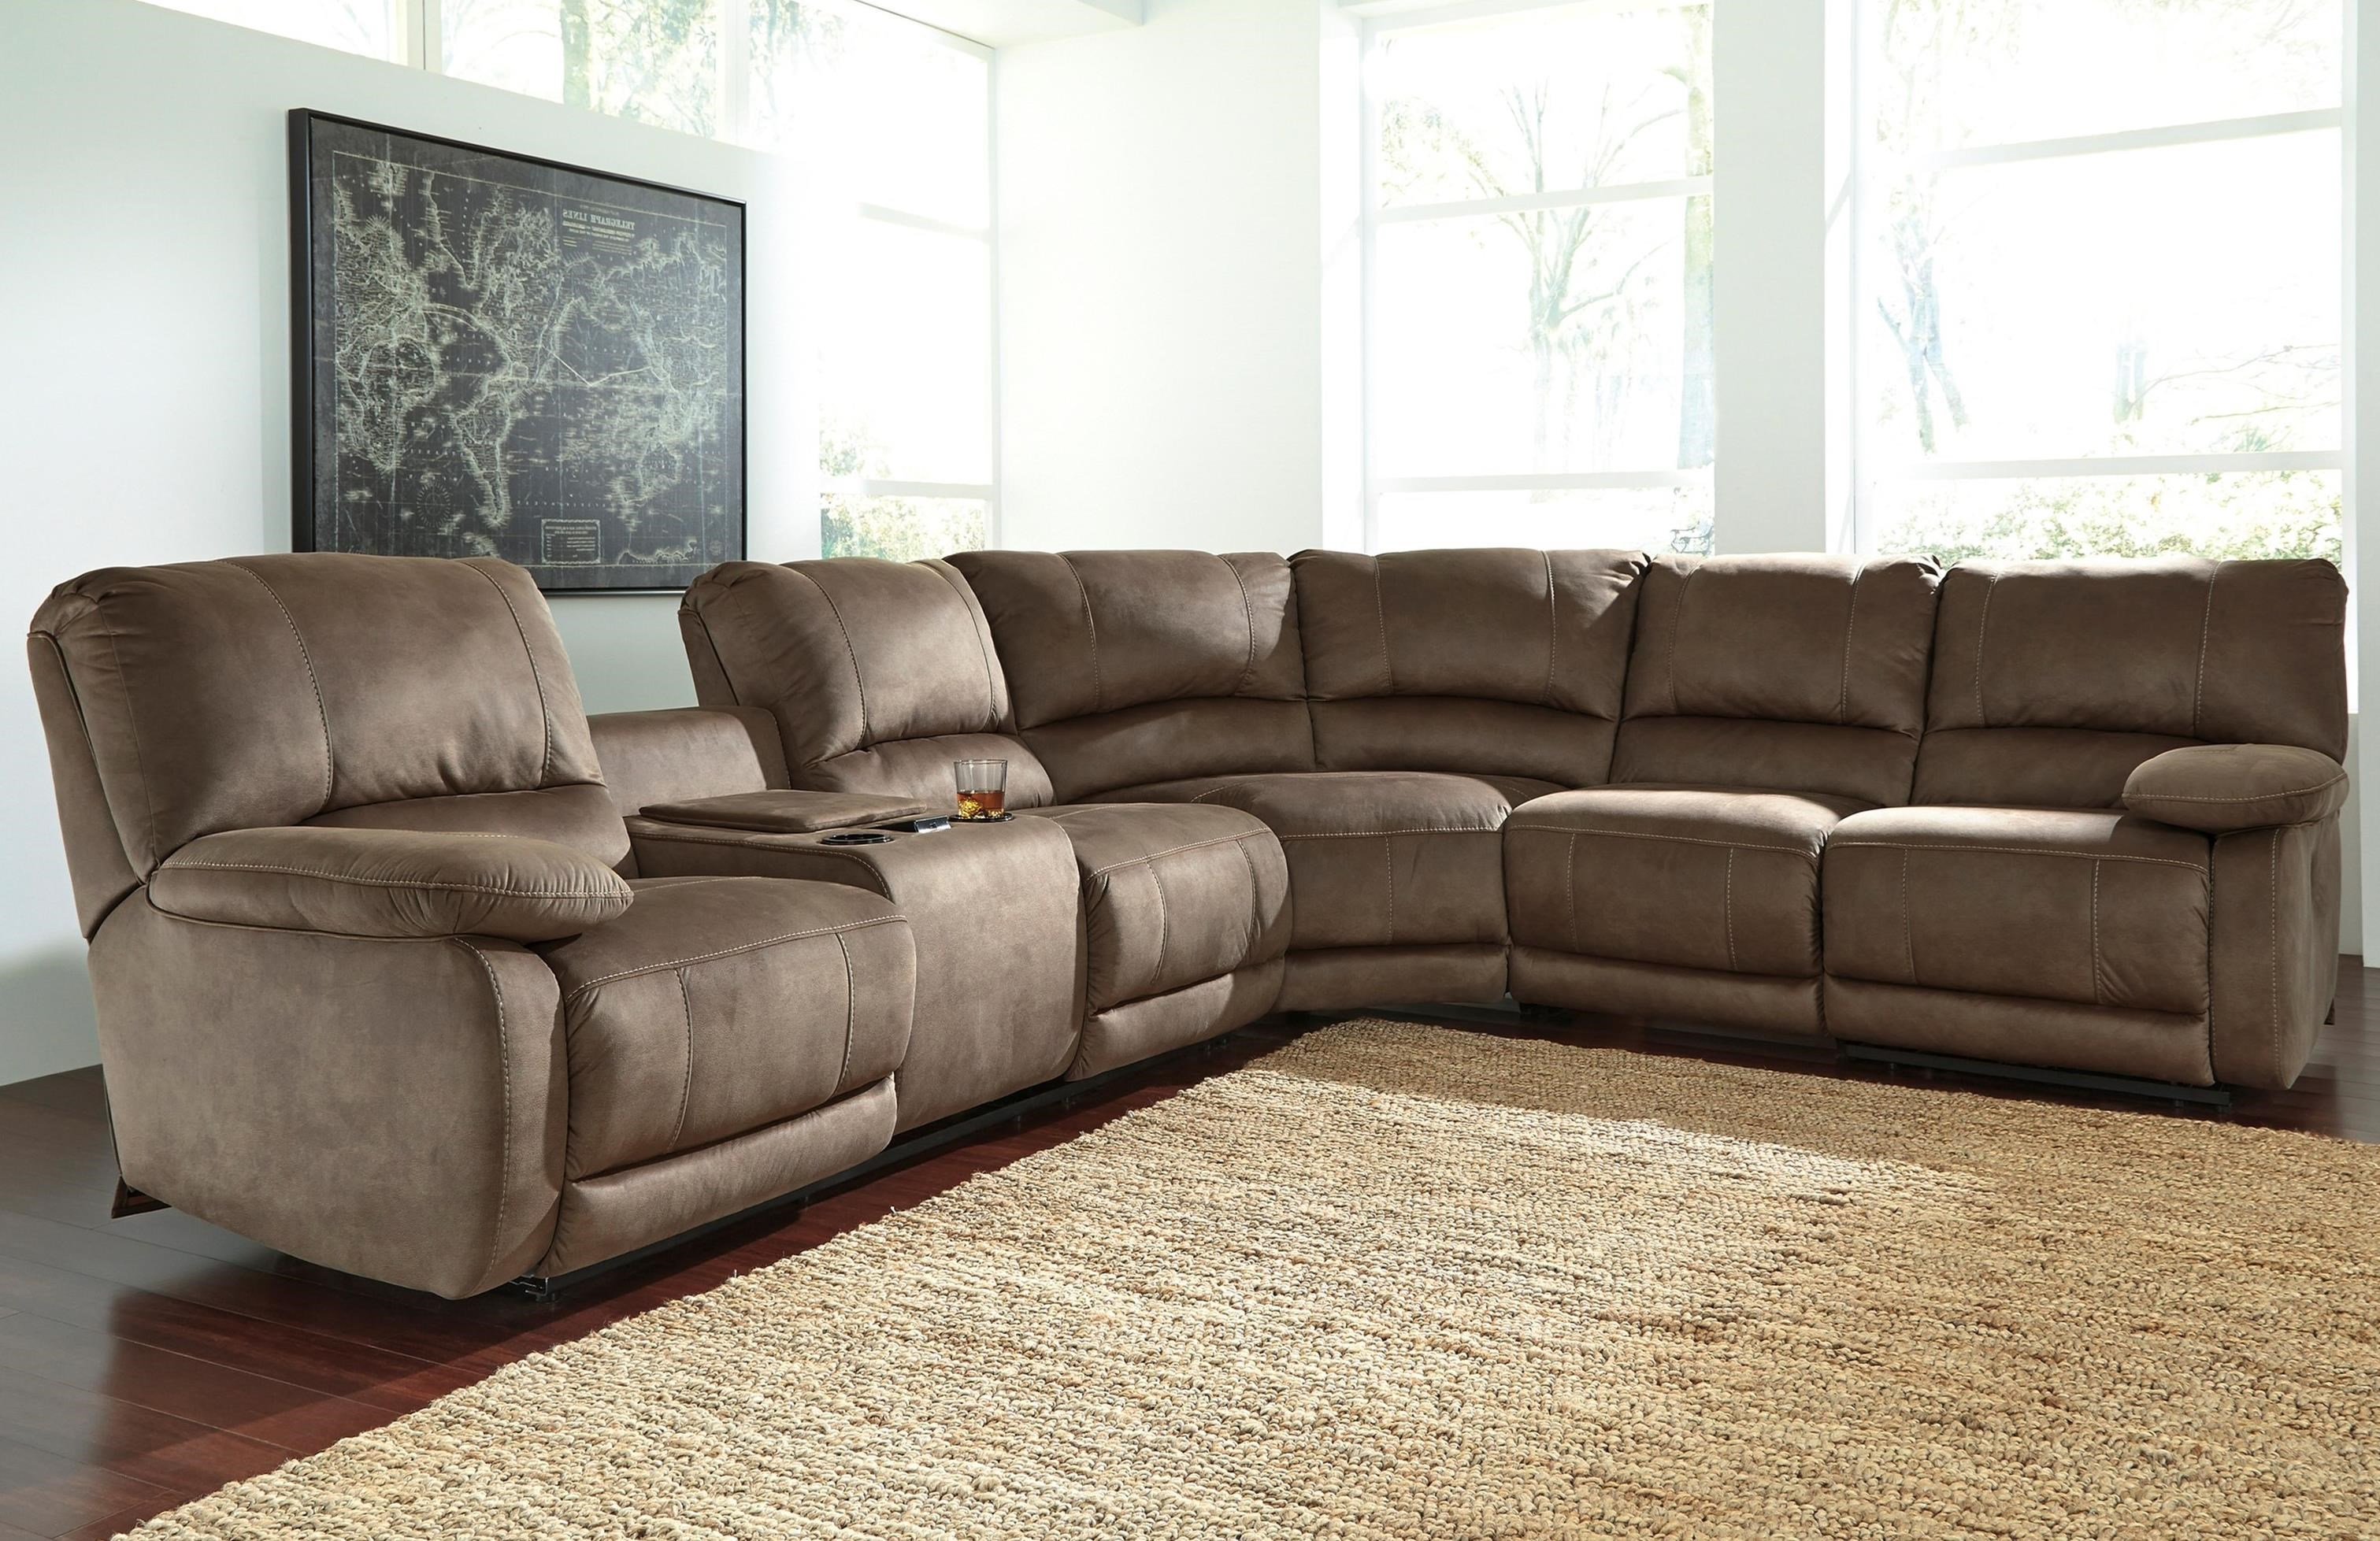 Signature Design by Ashley Seamus Power Reclining Sectional with Massage - Item Number: 4180001+77+46+62